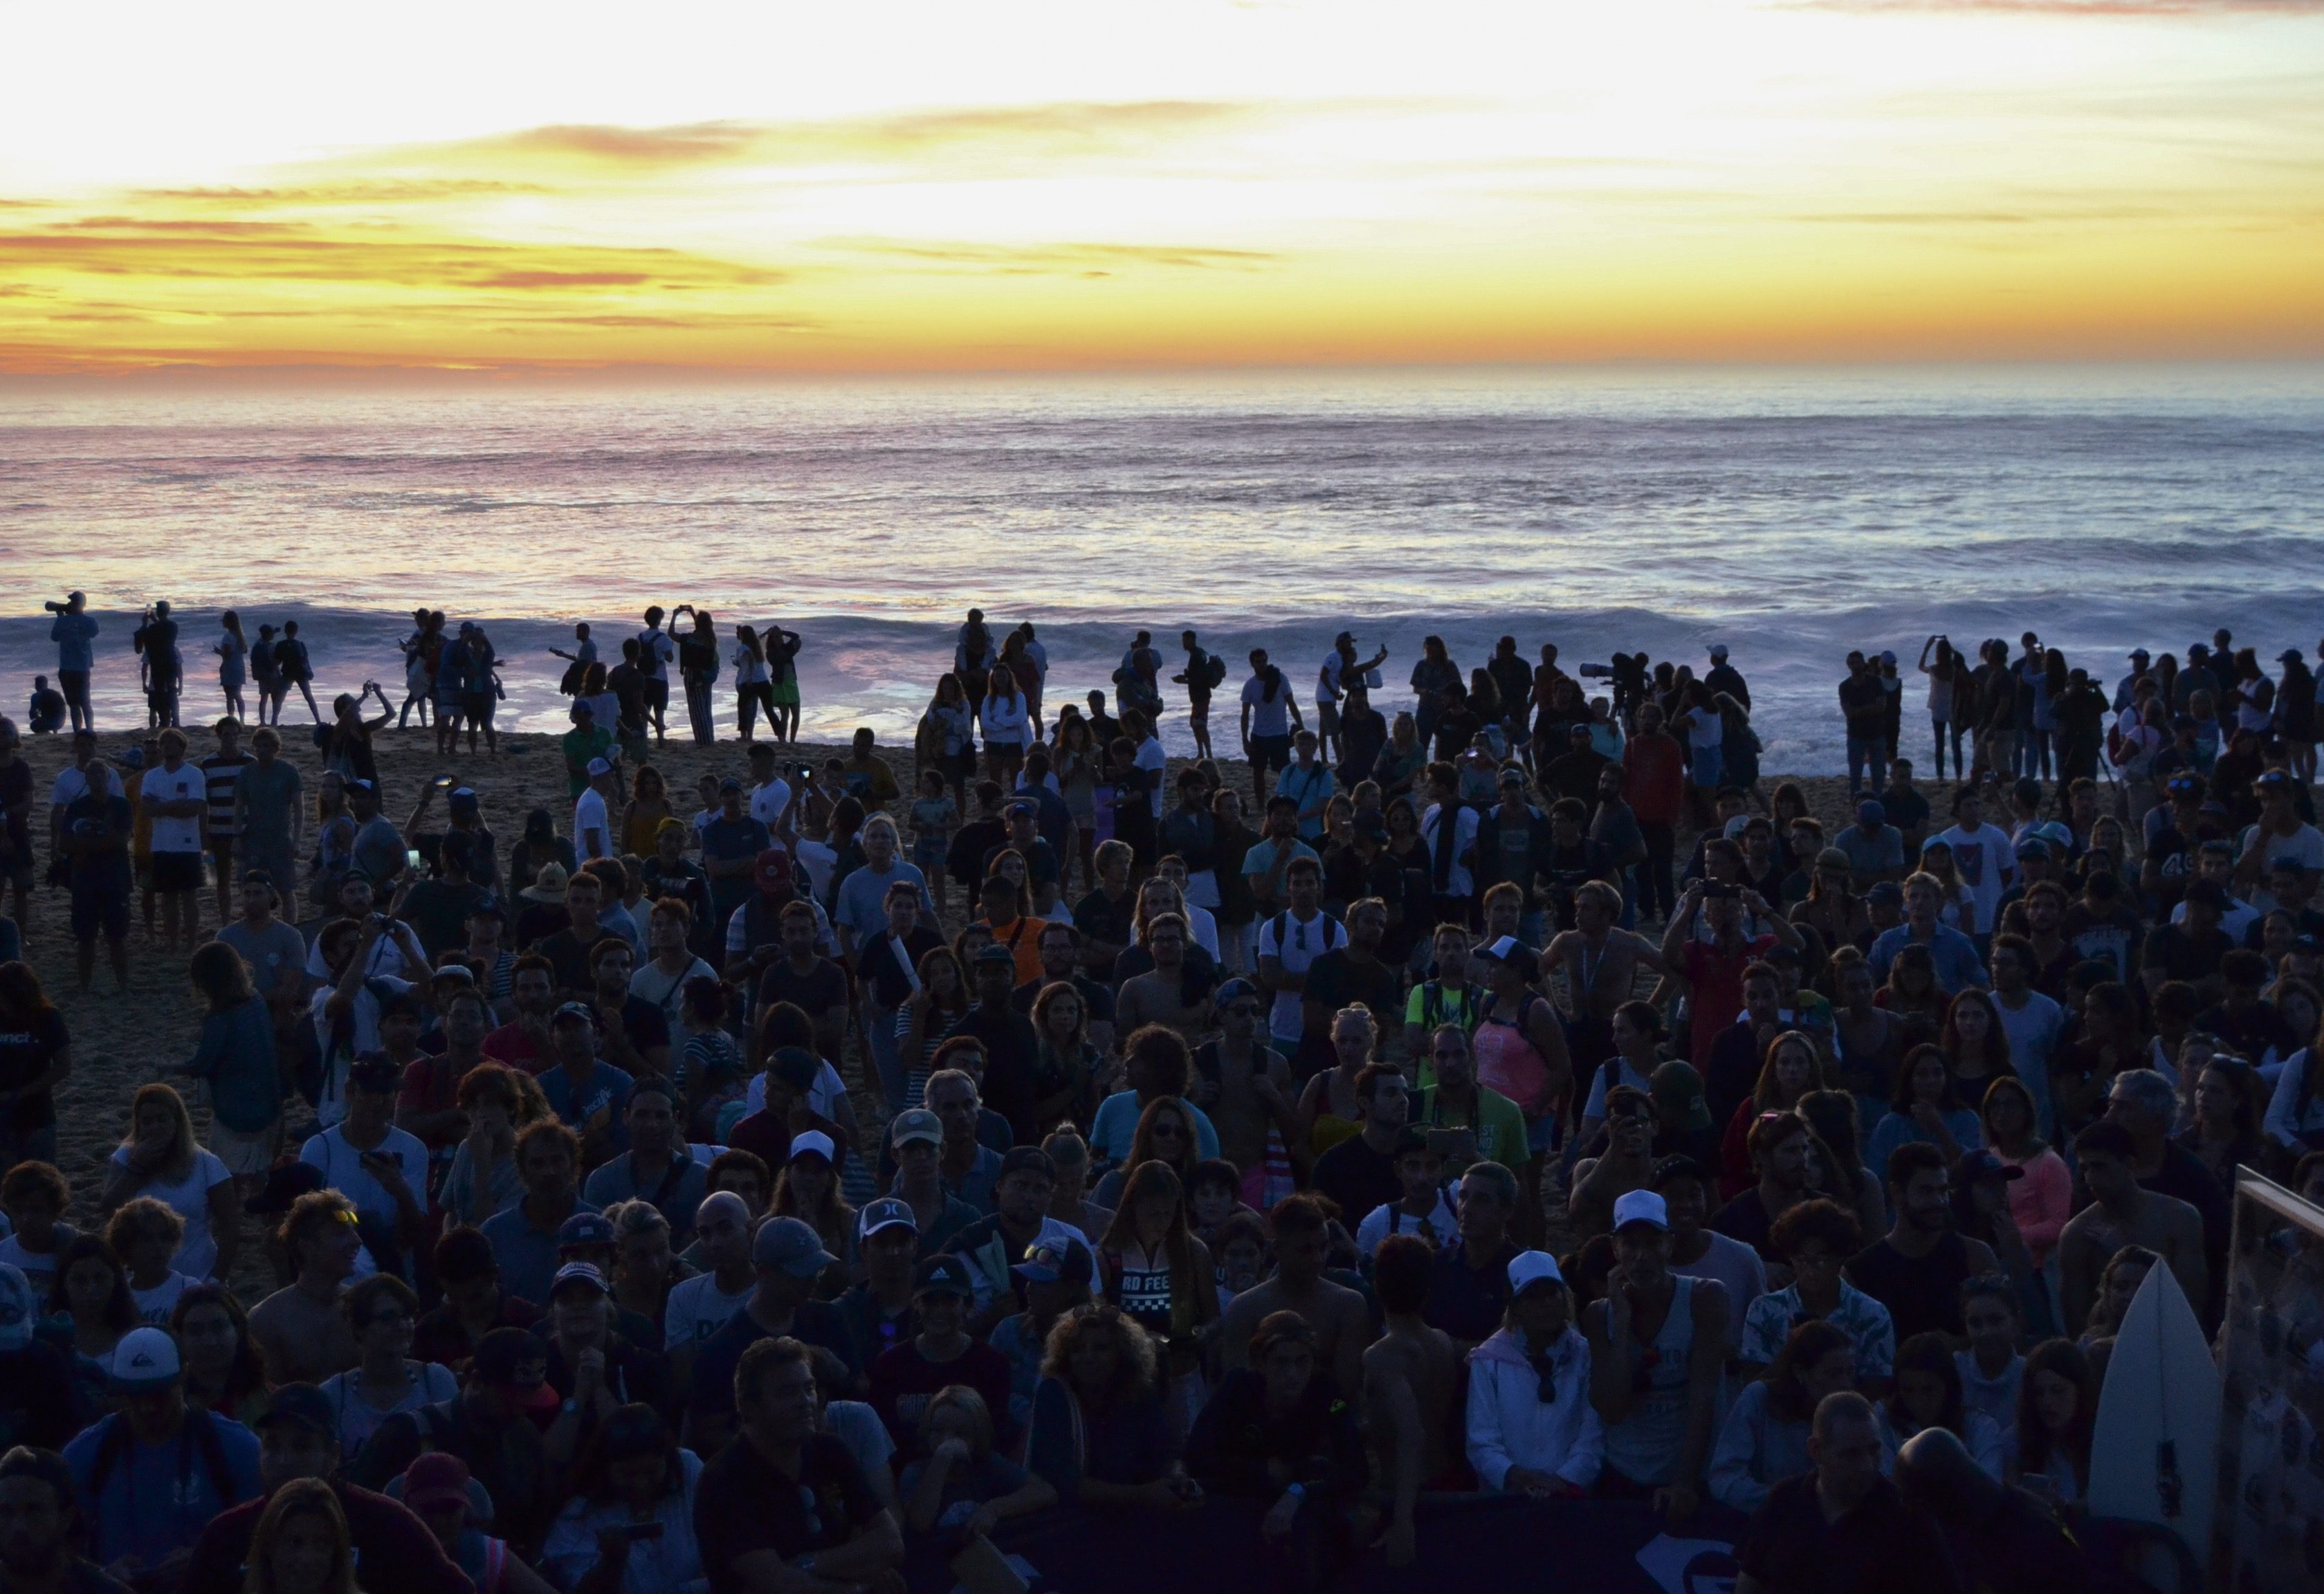 quiksilver-pro-france-roxy-pro-france-surf-quik-pro-roxy-pro-hossegor-culs-nuls-sunset-coucher-de-soleil-landes-wsl-vagues-world-surf-league-les-ptits-touristes-blog-voyage